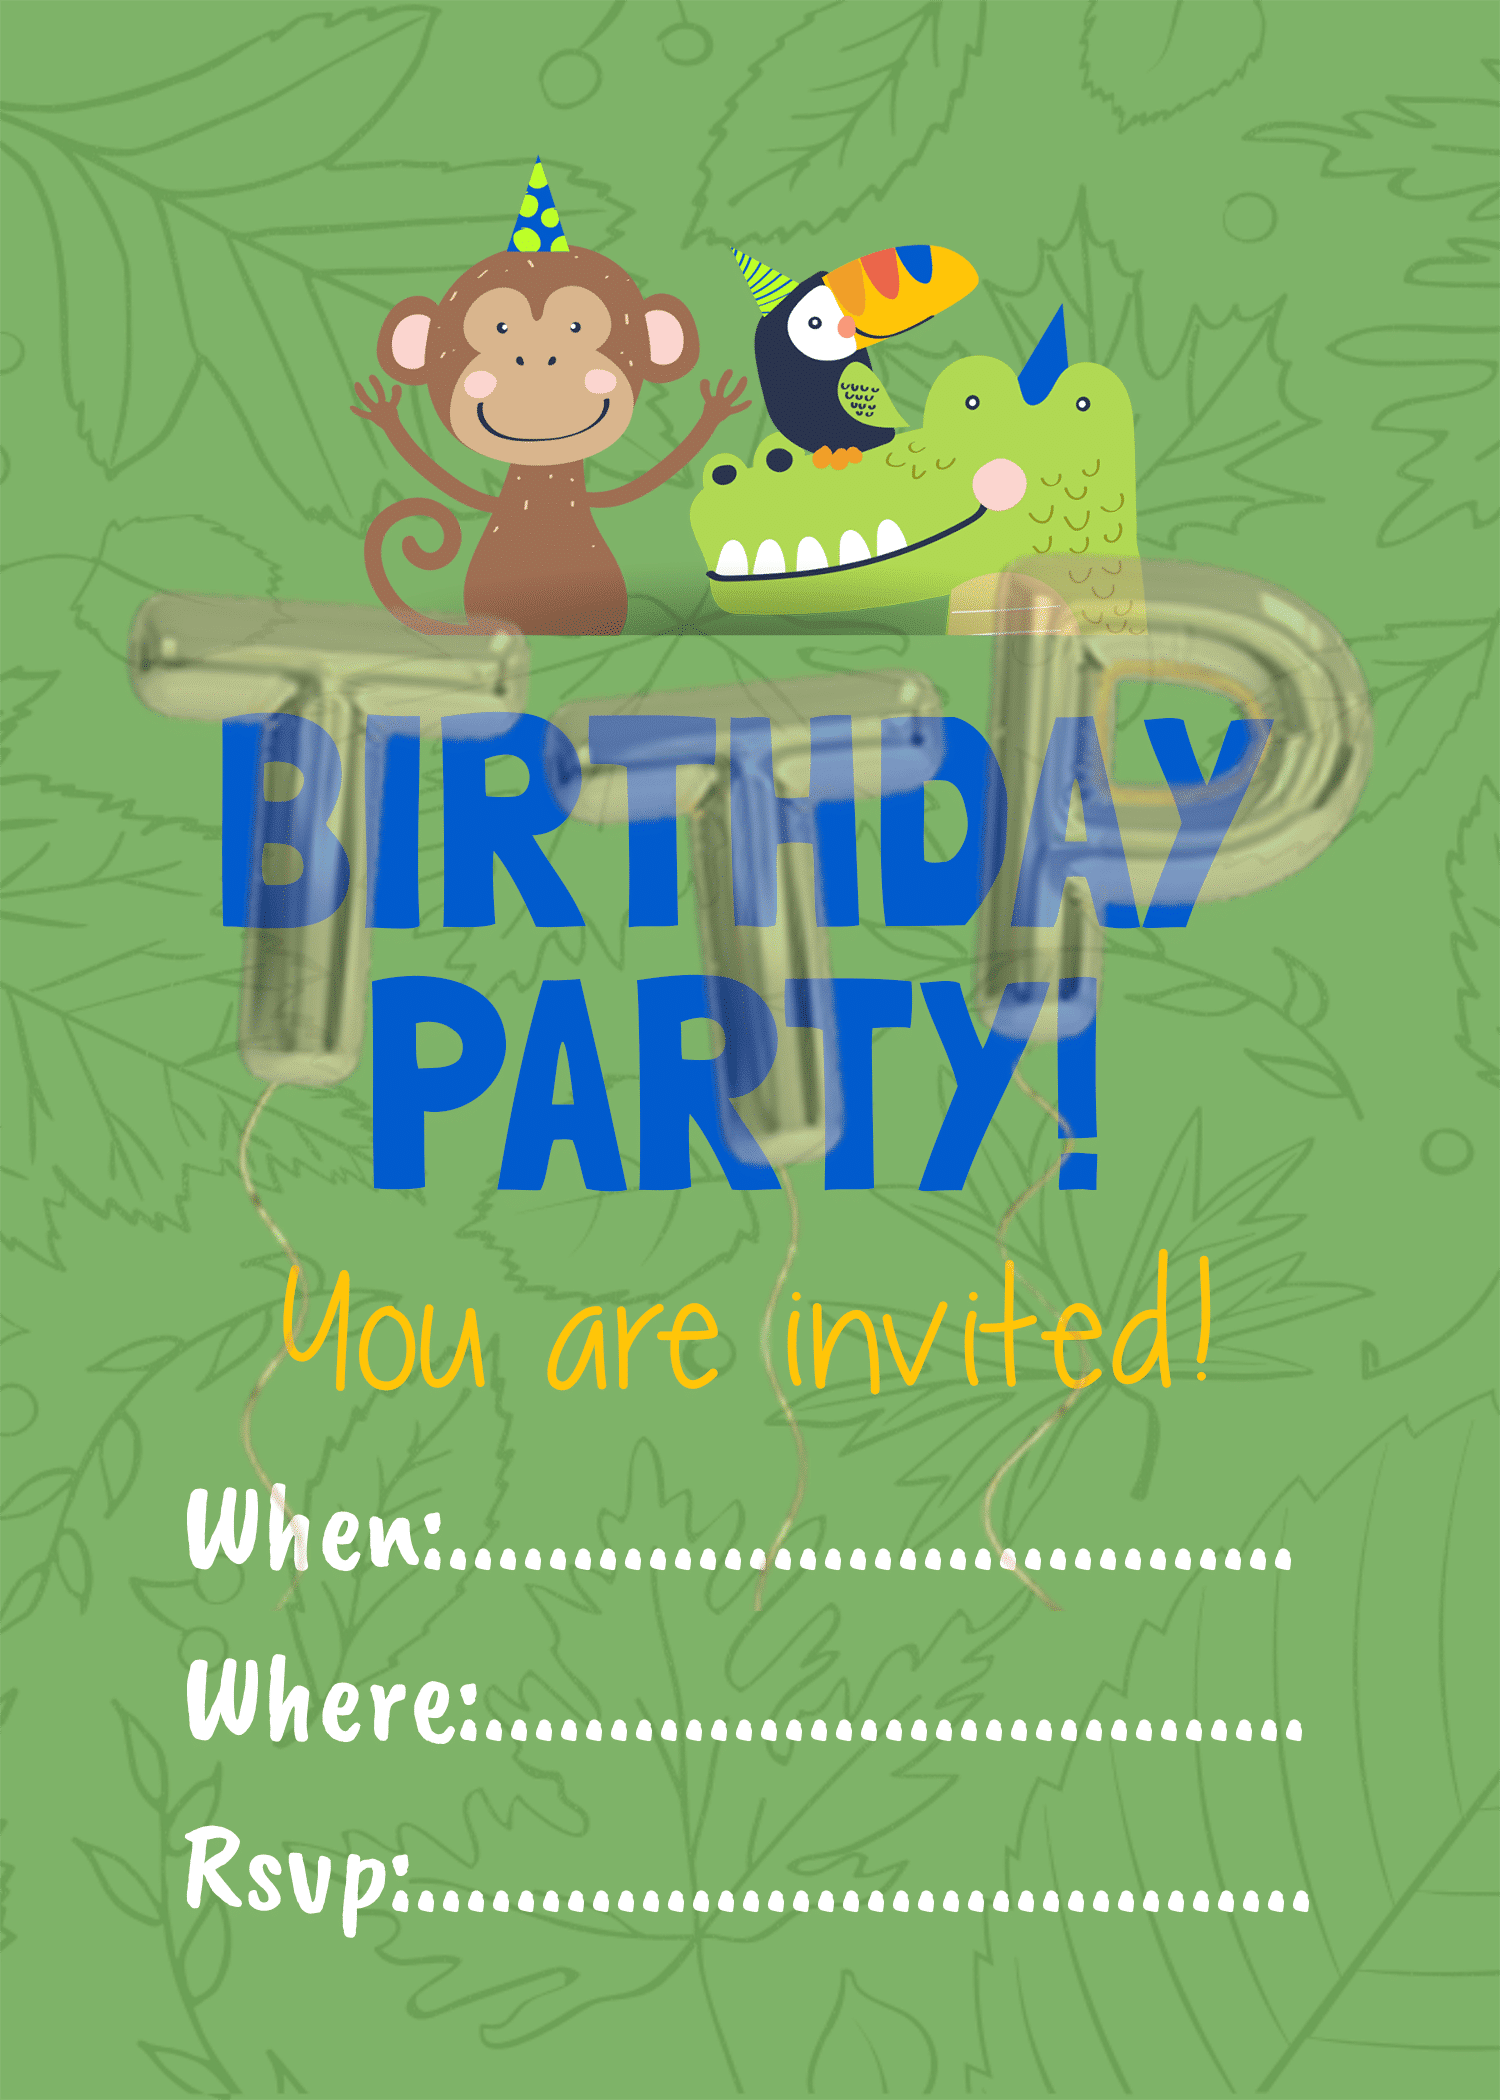 wild-life green free download invitation water mark